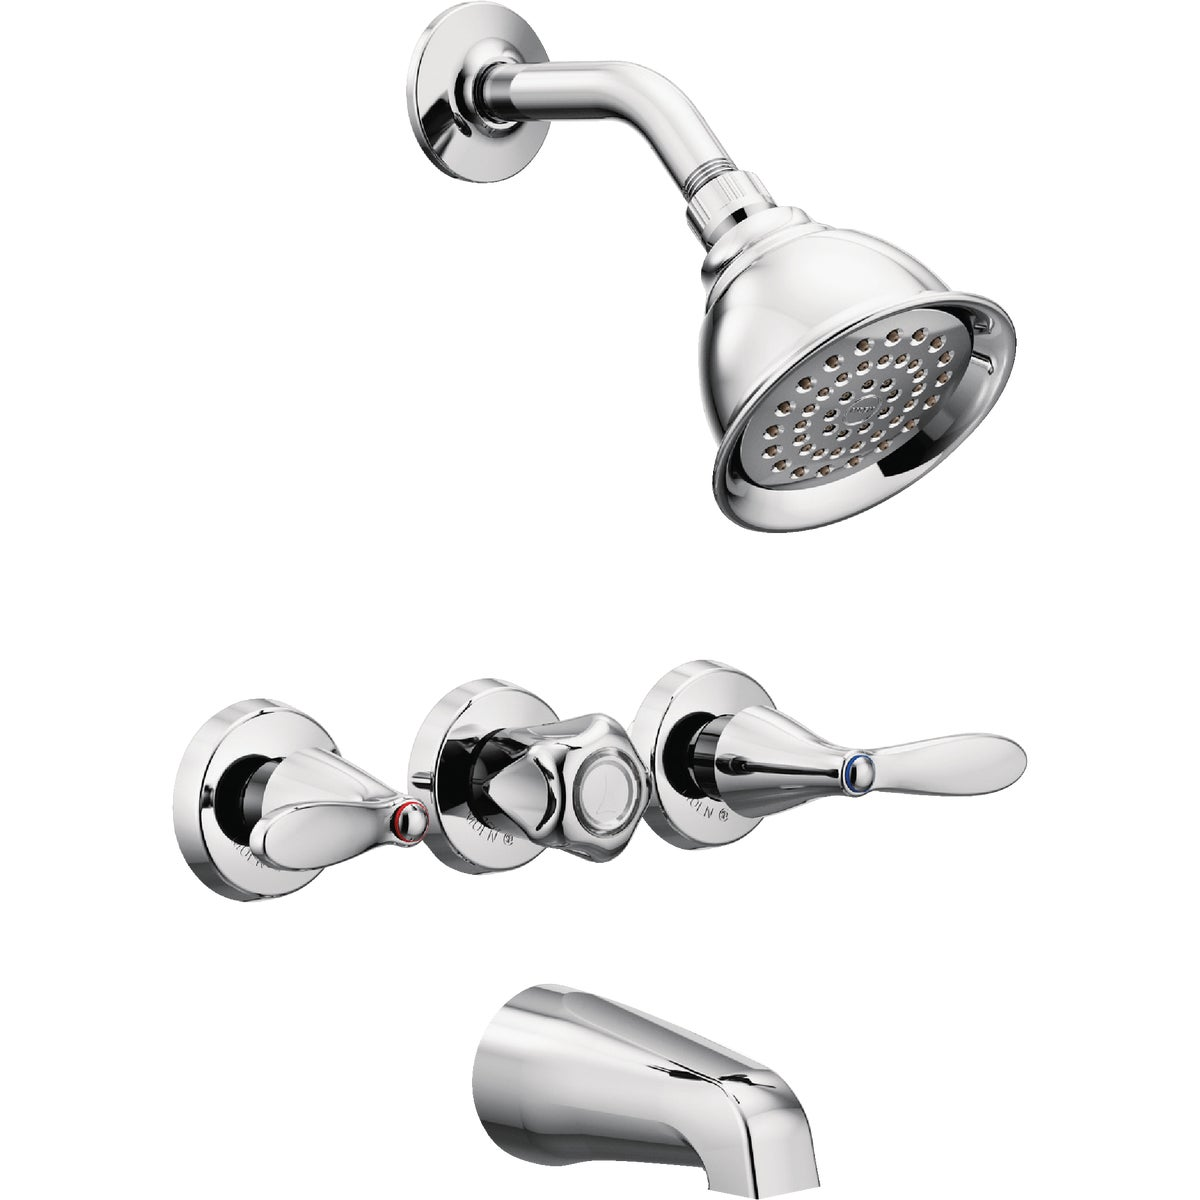 CHR TUB/SHOWER FAUCET - 82403EP by Moen Inc